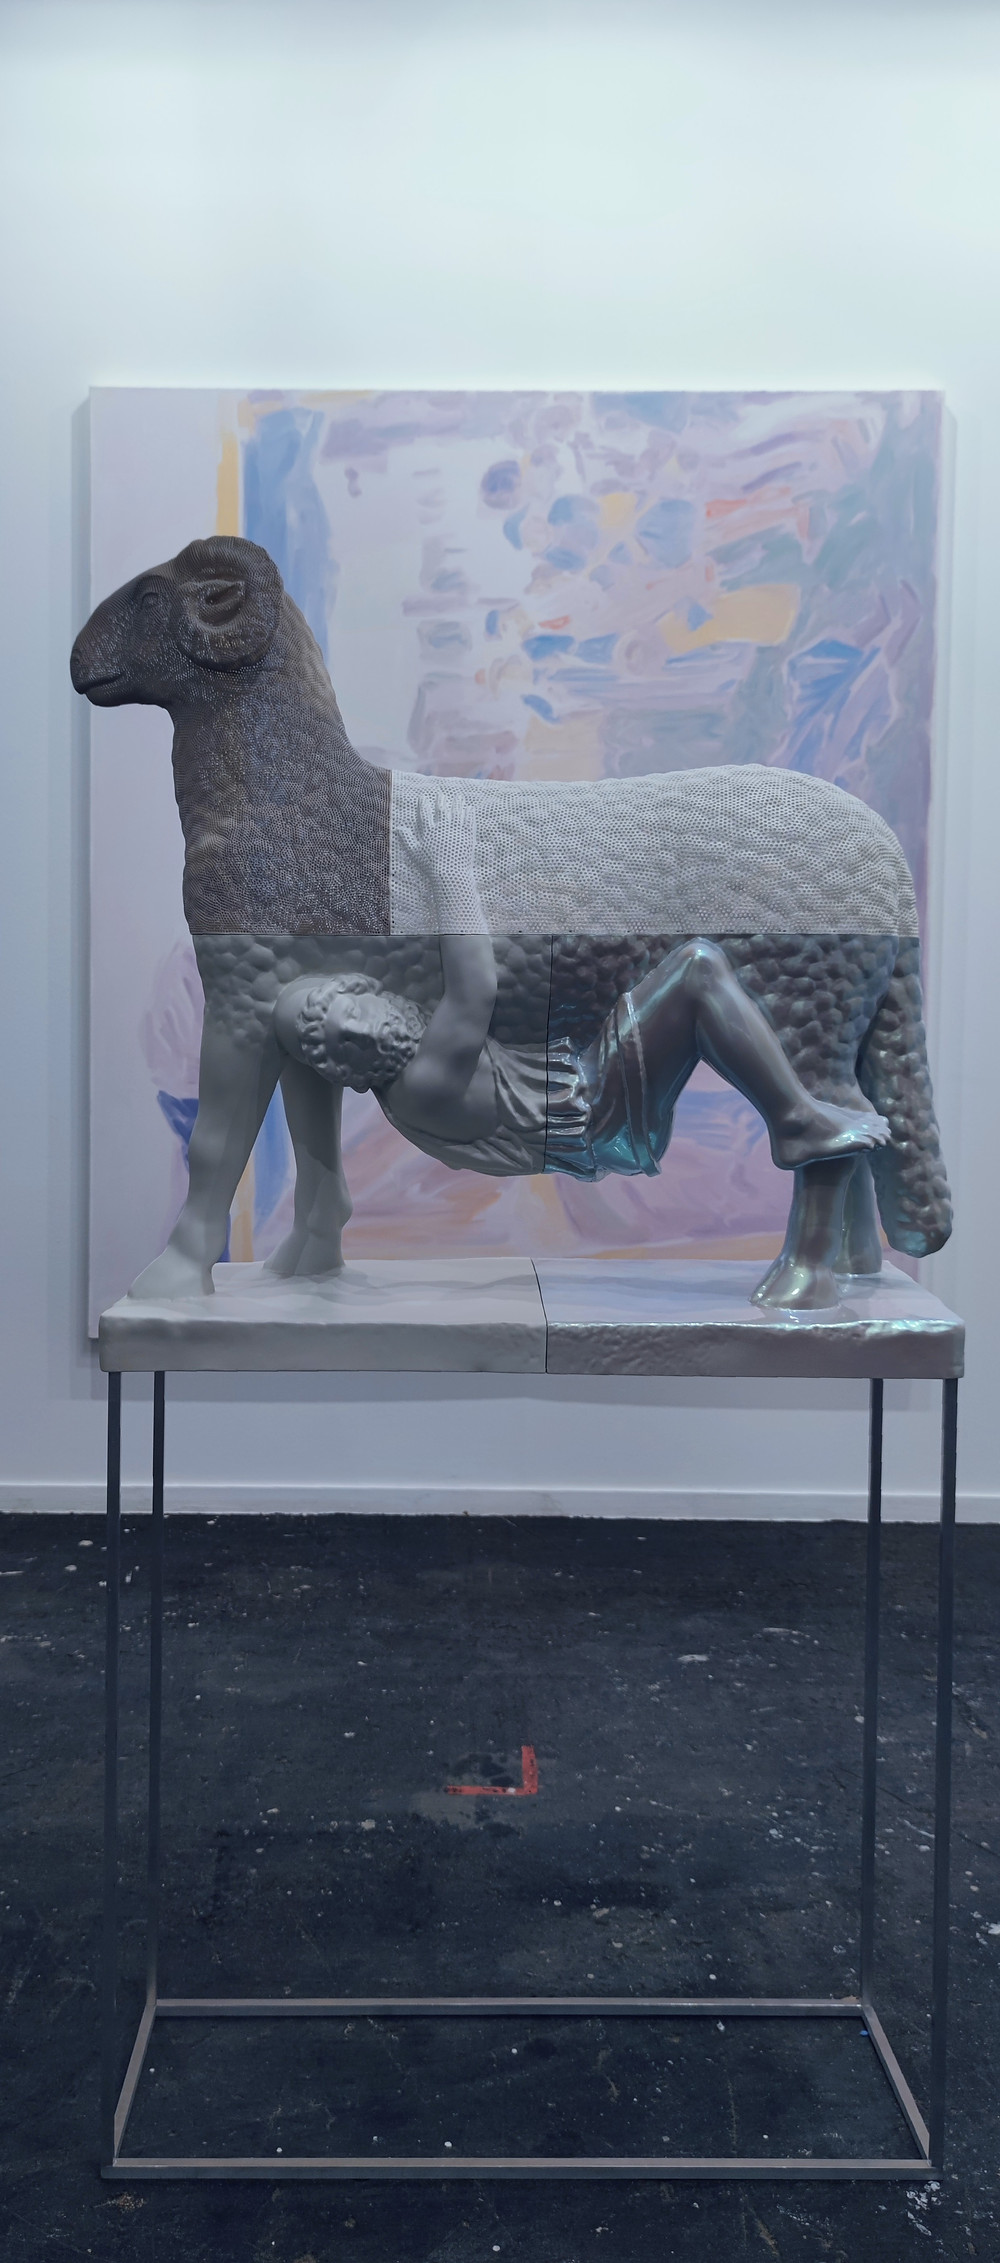 Oliver Laric, Ram with human, 2021.